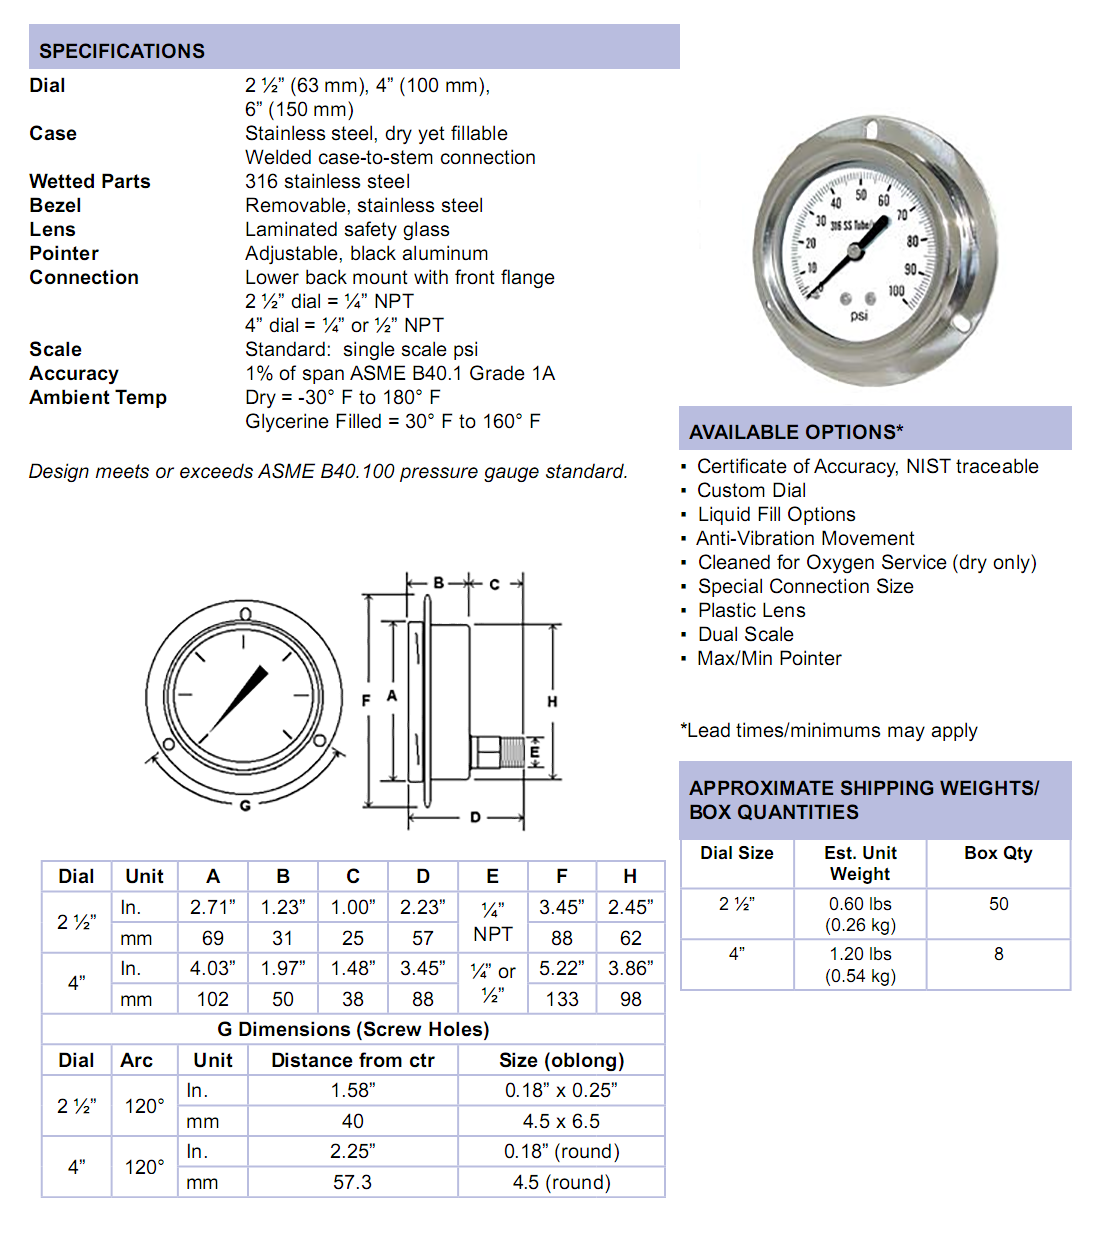 314d-all-stainless-steel-front-flange-panel-mount-specifications